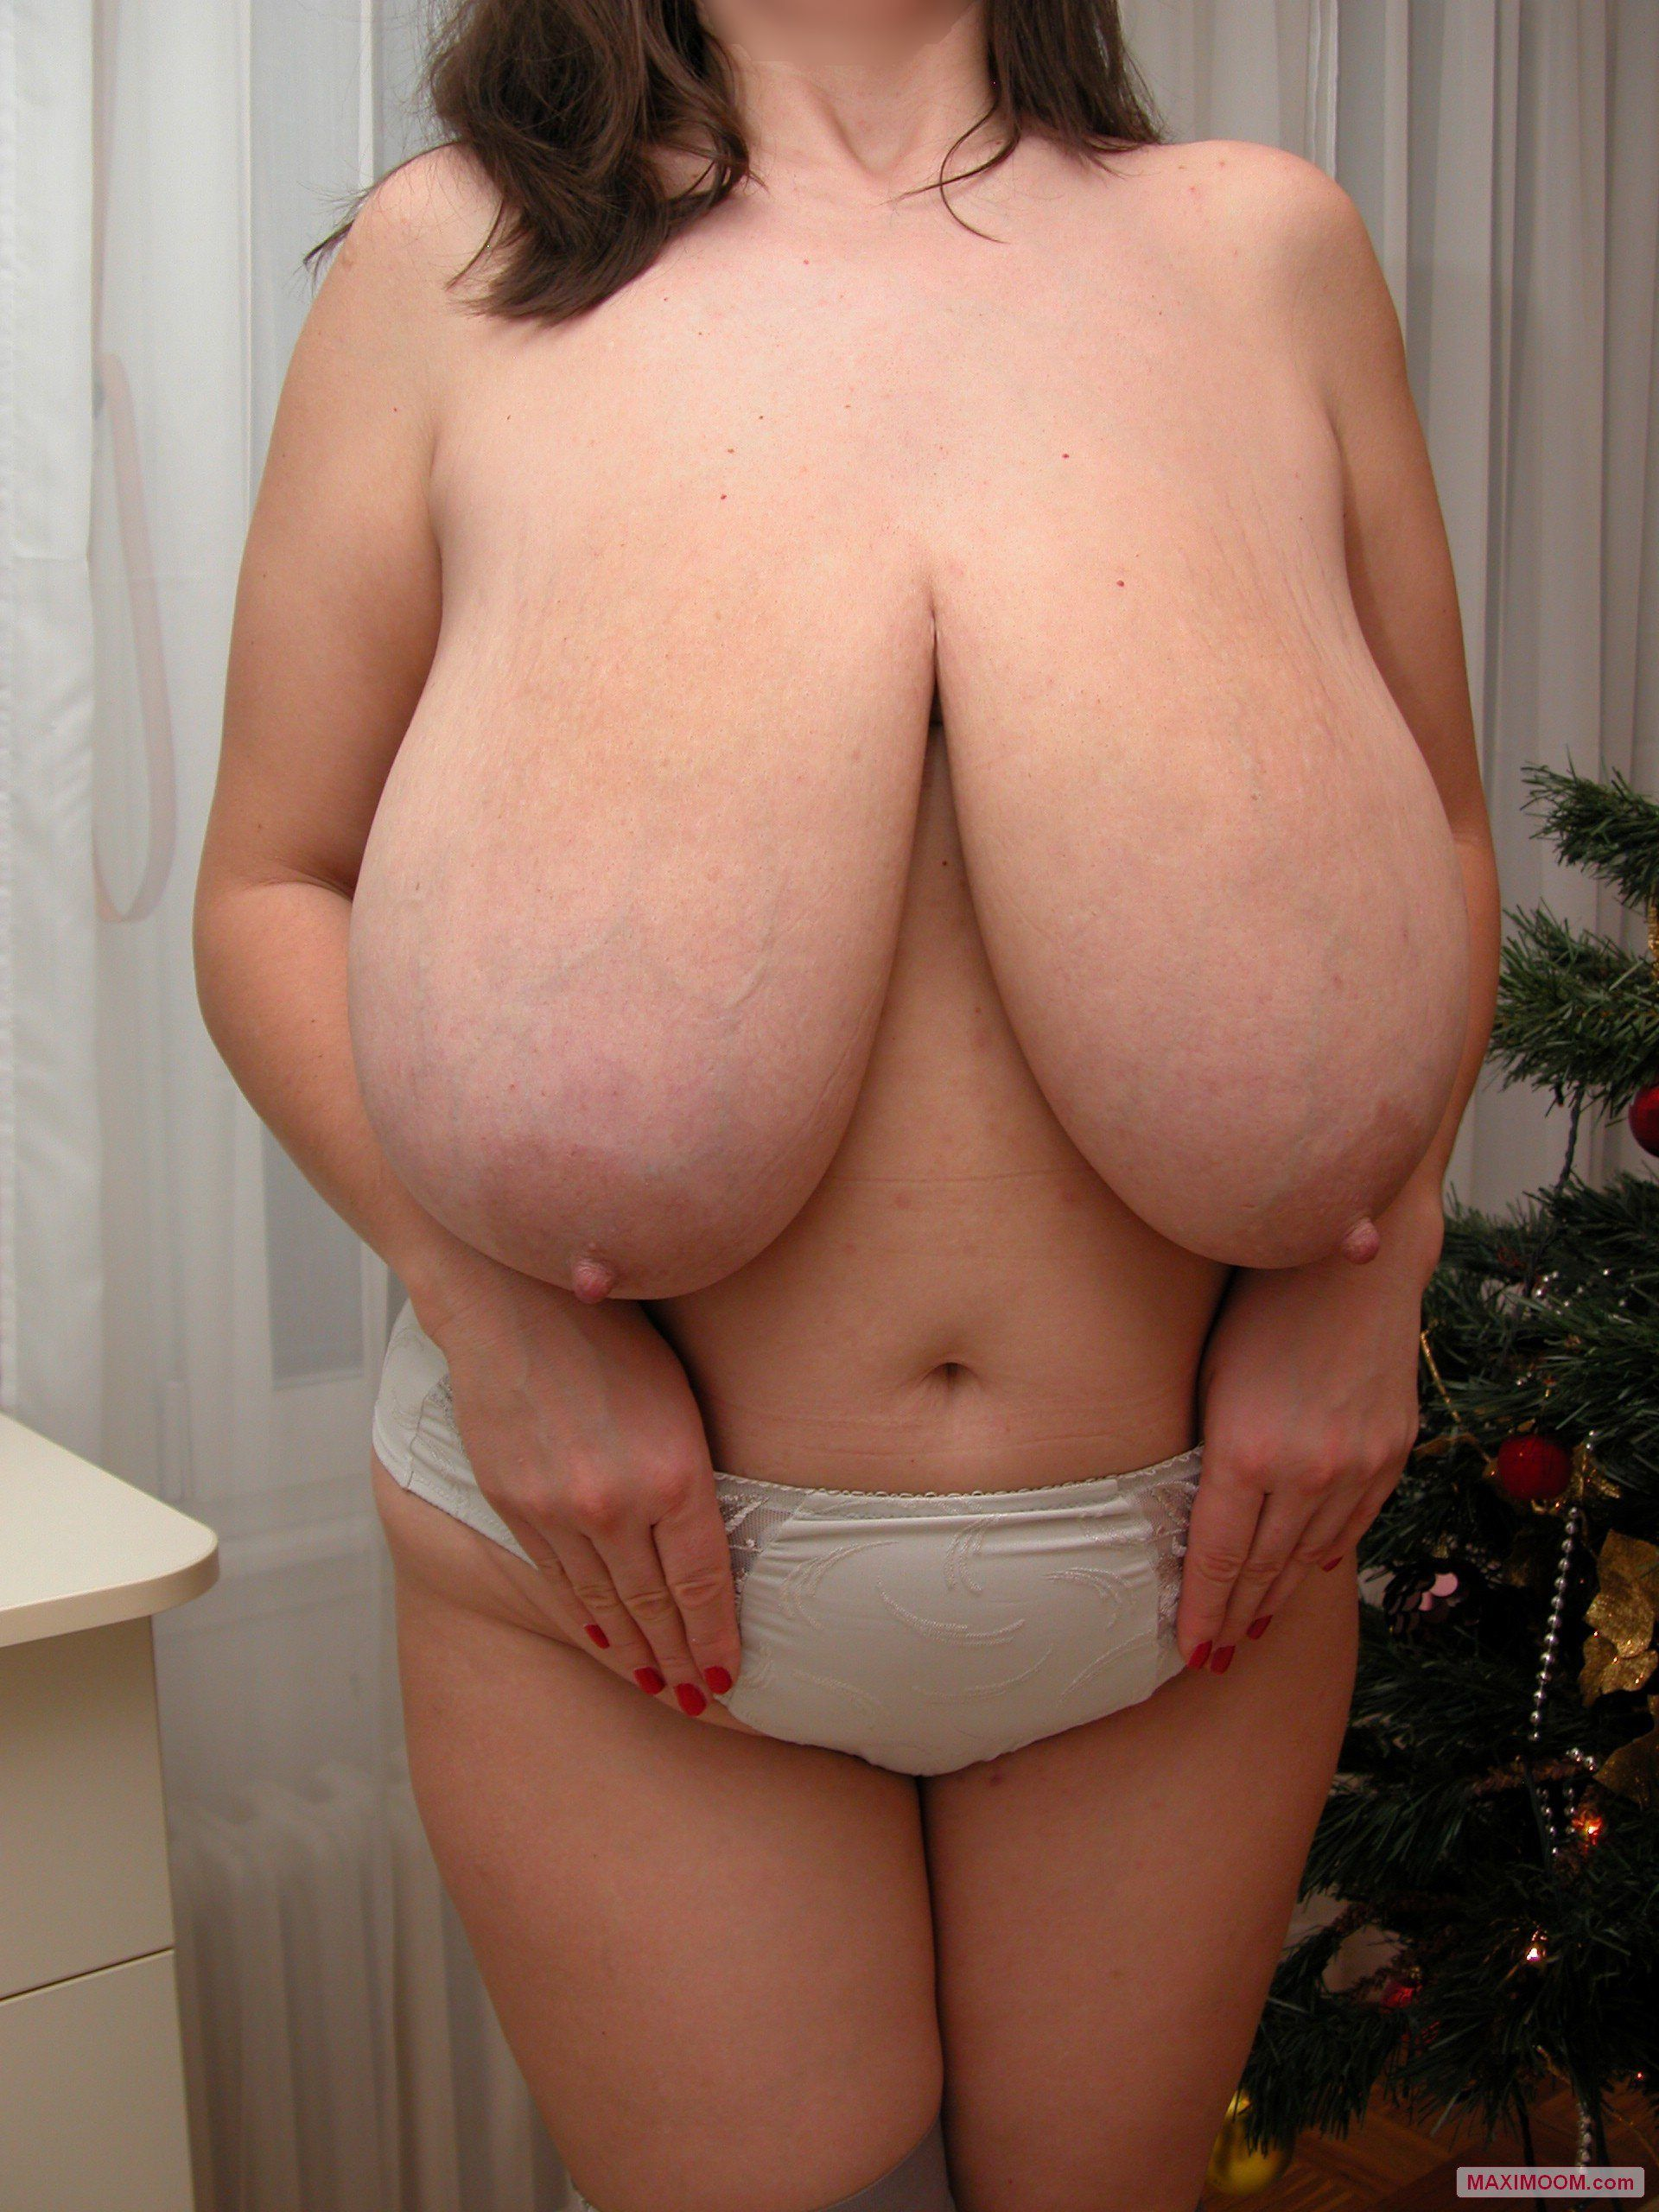 Low hanging tits